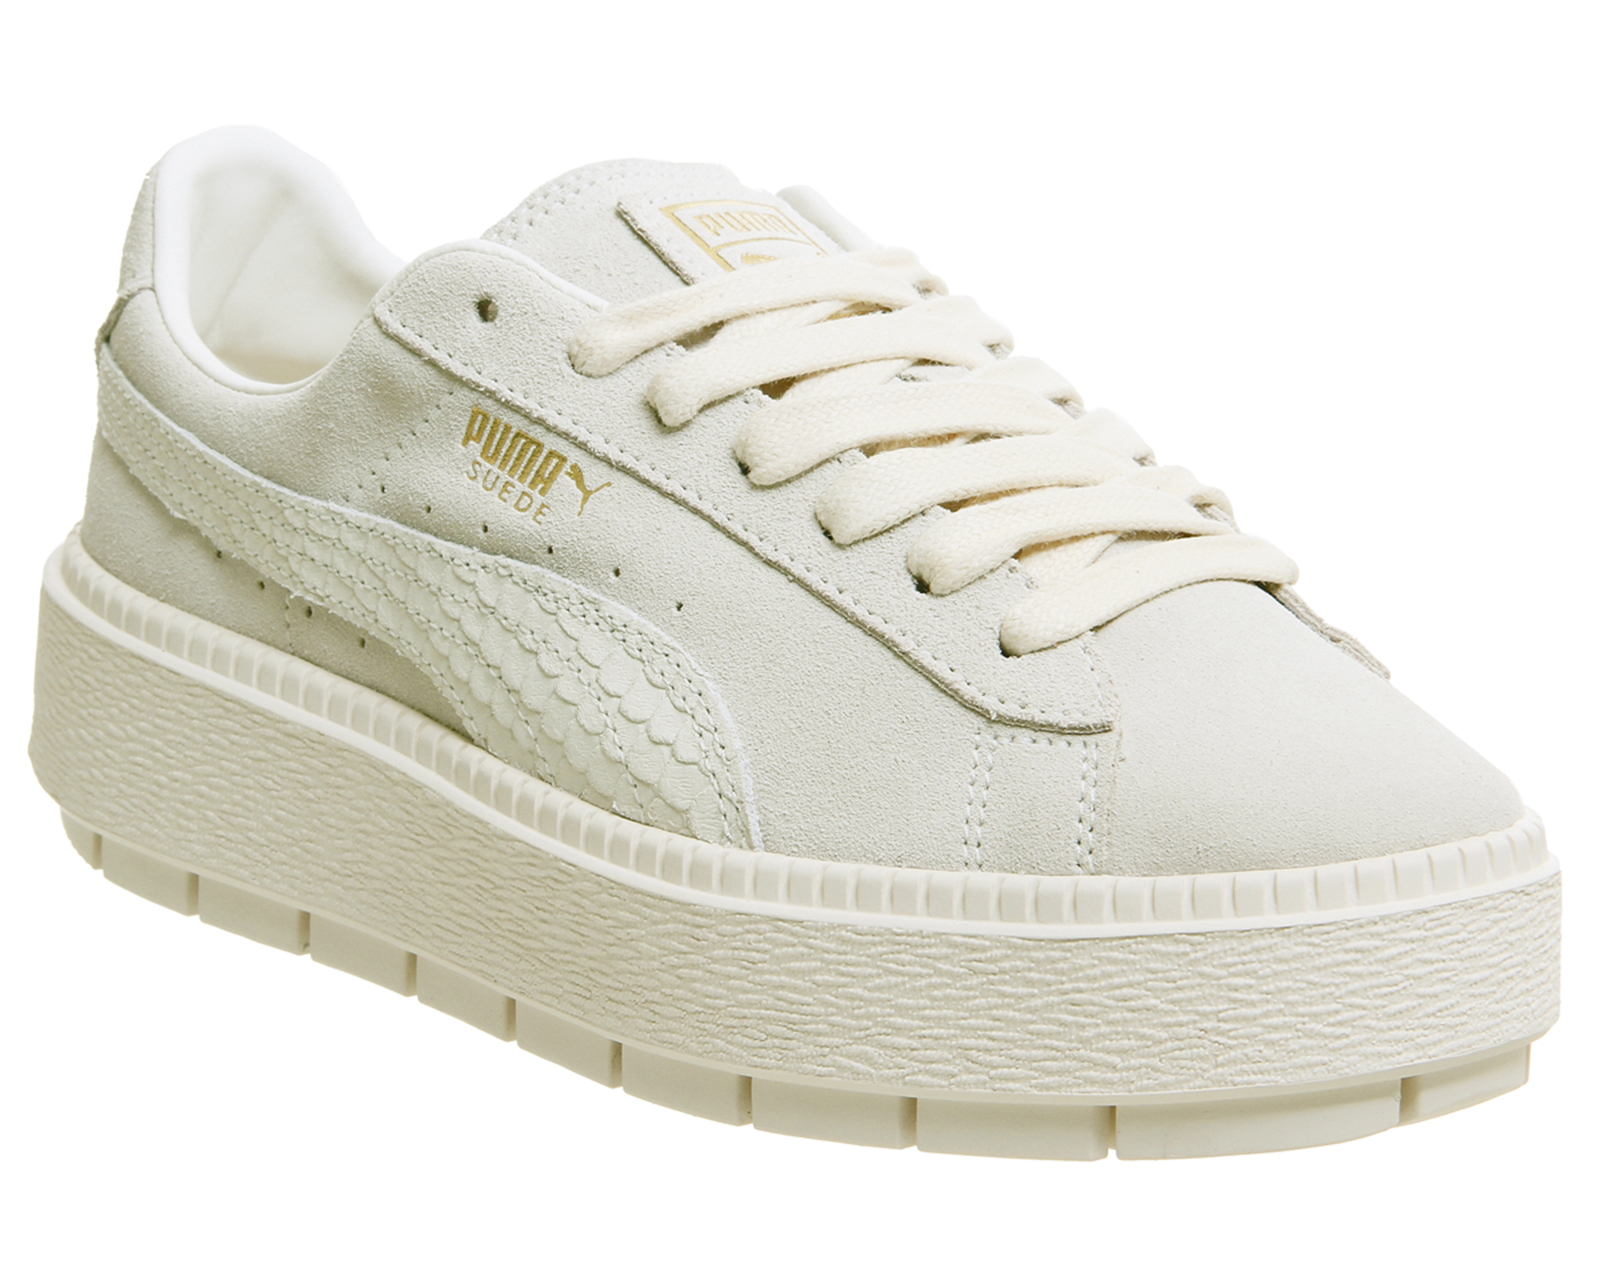 676a67ac196d Sentinel Womens Puma Suede Platform Trace Trainers Whisper White Gold Animal  Trainers Sho